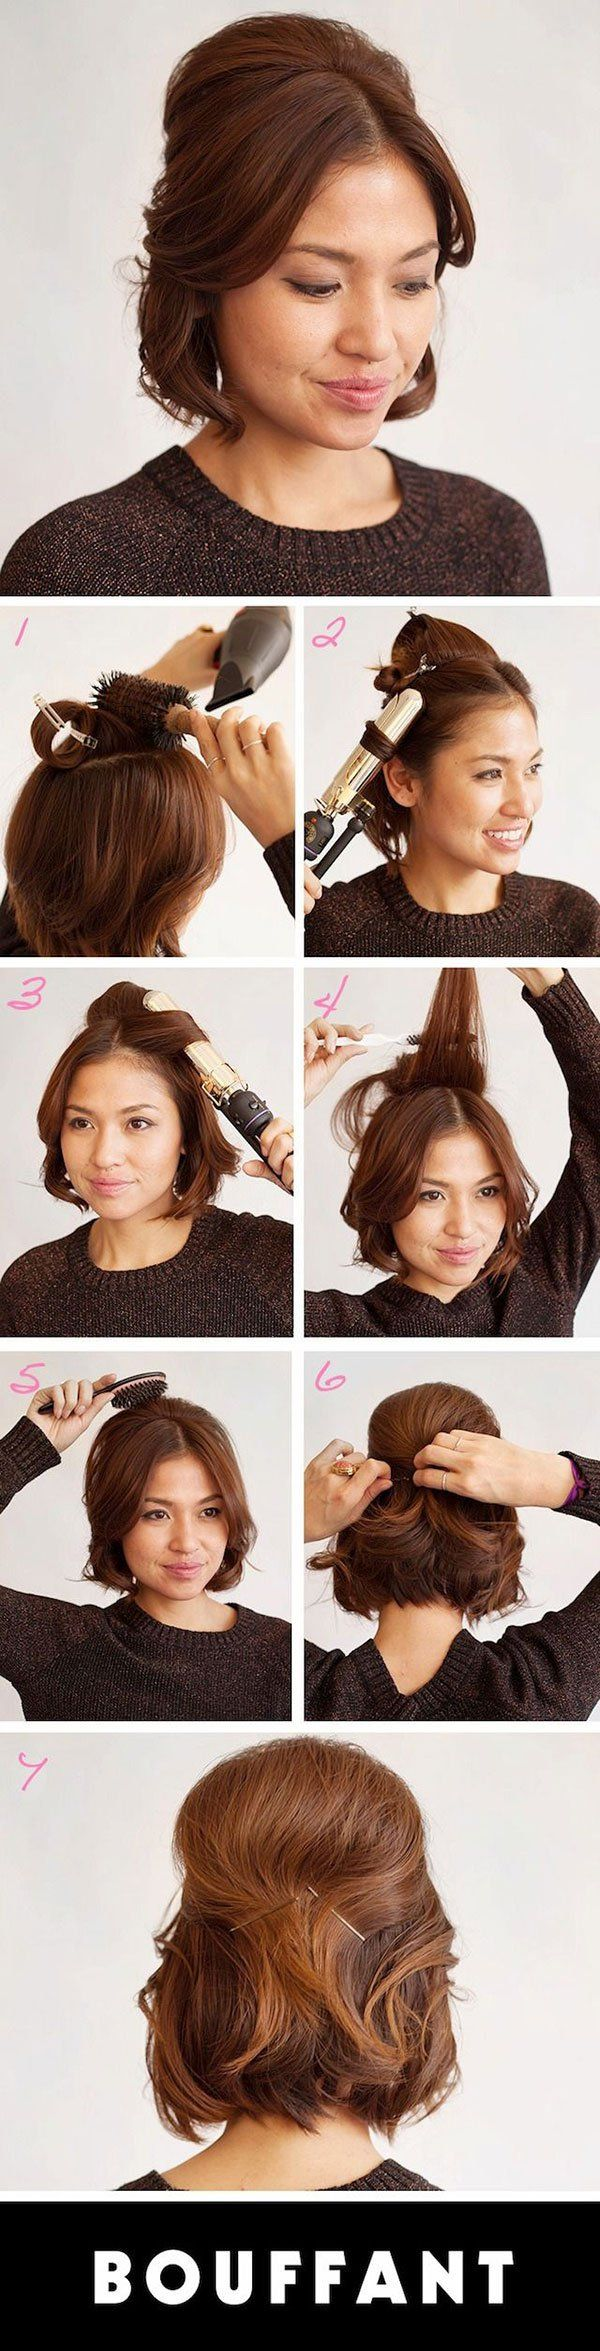 easy formal hairstyles for short hair | easy formal hairstyles